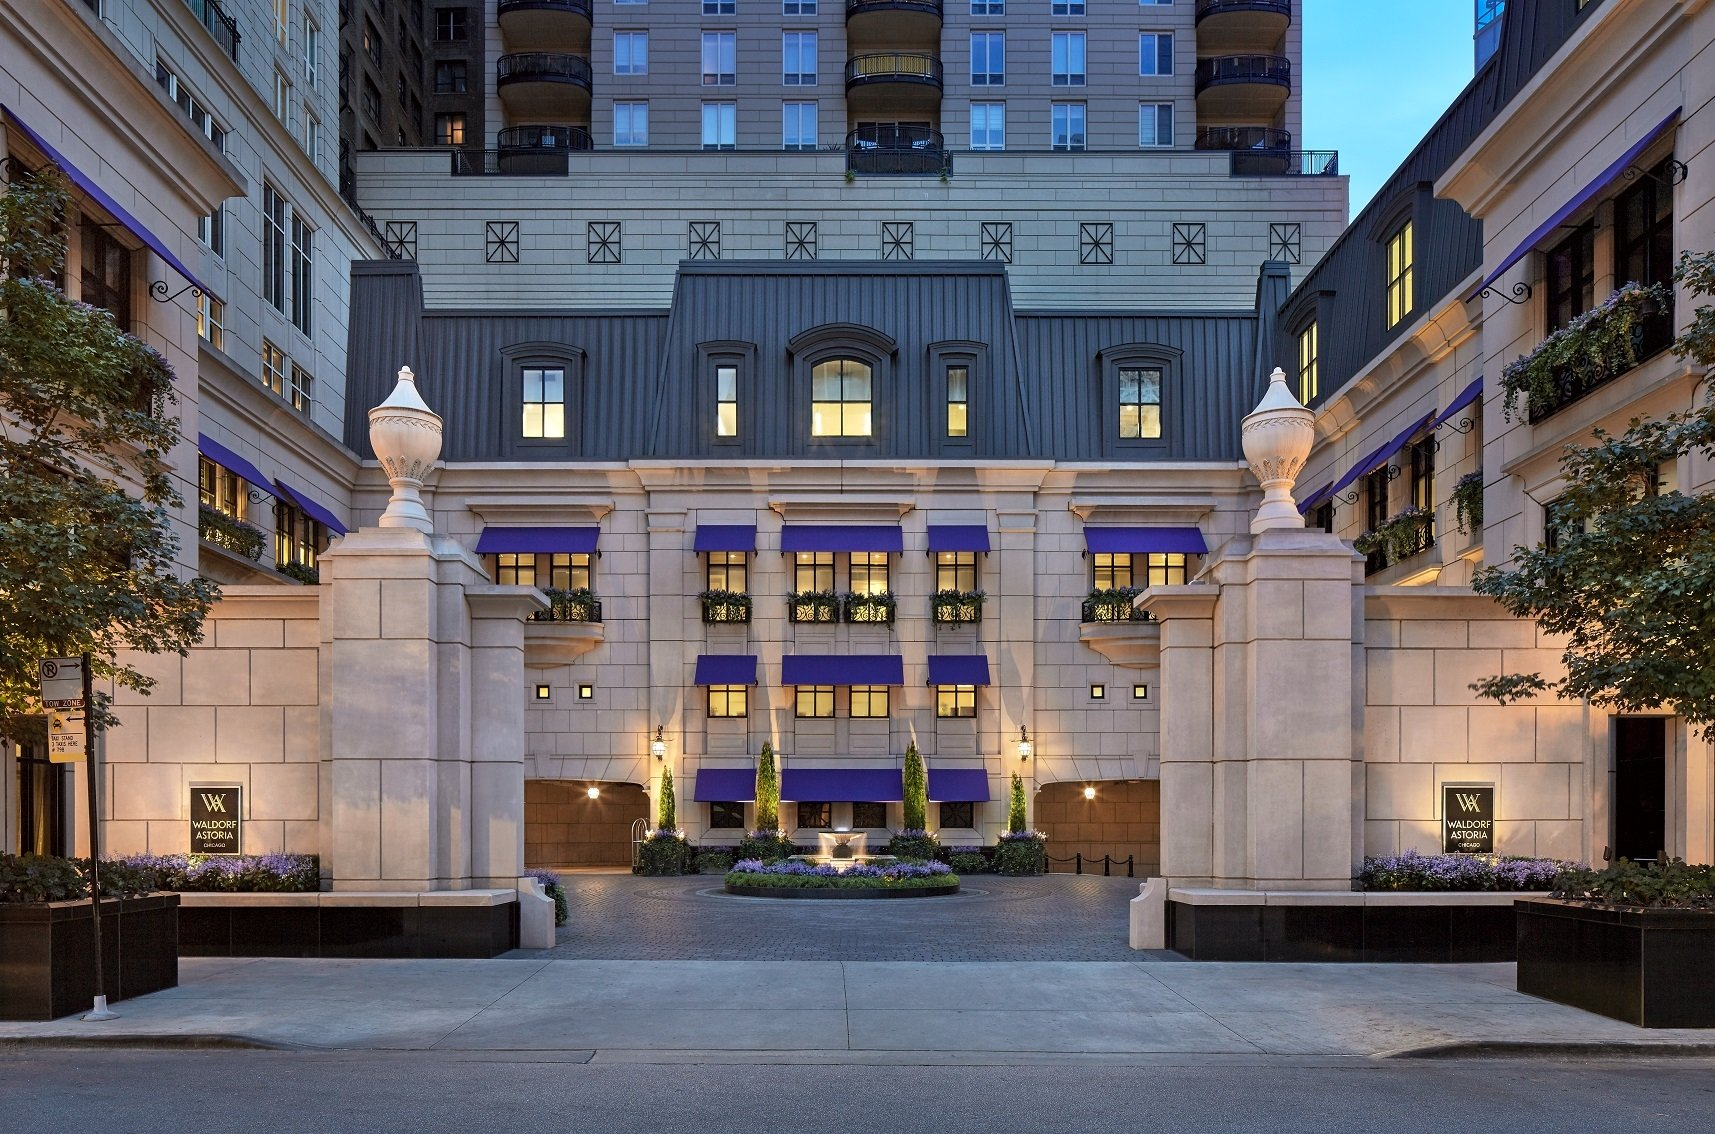 Top Luxury Hotels in America - Waldorf Astoria - Chicago, IL - best hotels in chicago - luxury hotels chicago Top Luxury Hotels in America Top Luxury Hotels in America for the Perfect End of Summer Getaway Waldorf Astoria Chicago IL